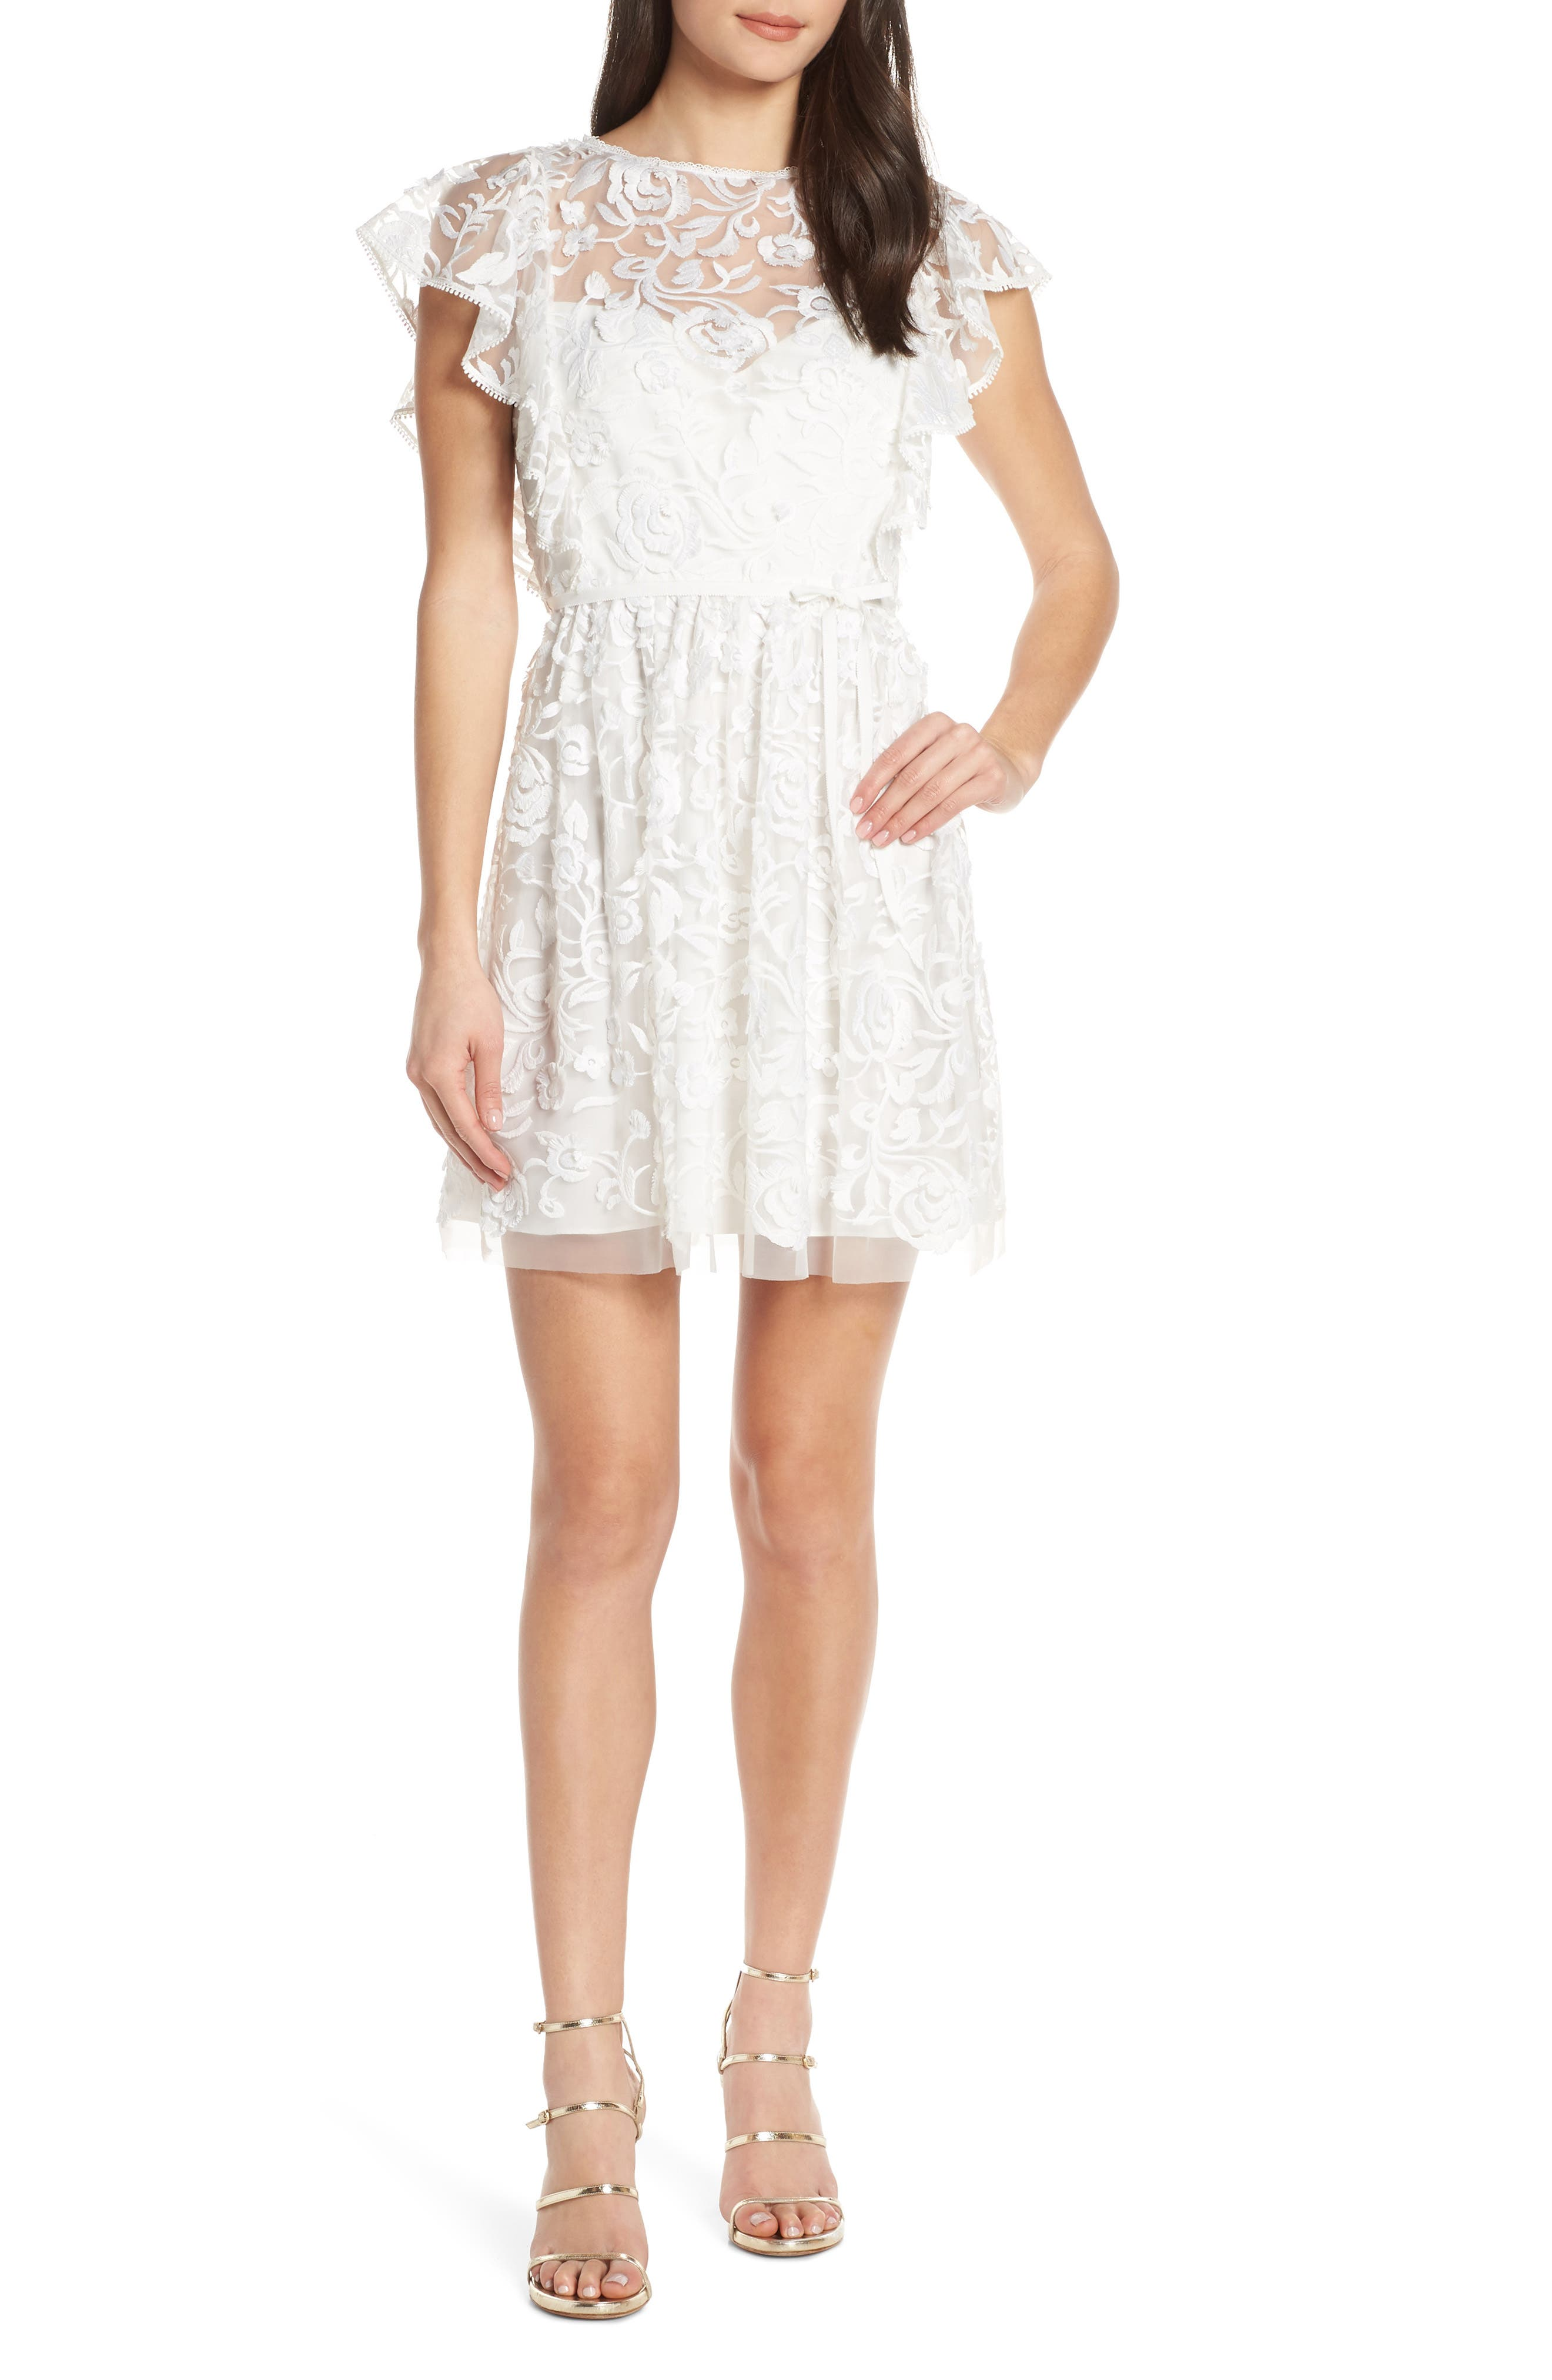 Ml Monique Lhuillier Floral Embroidery Ruffle Party Dress, White